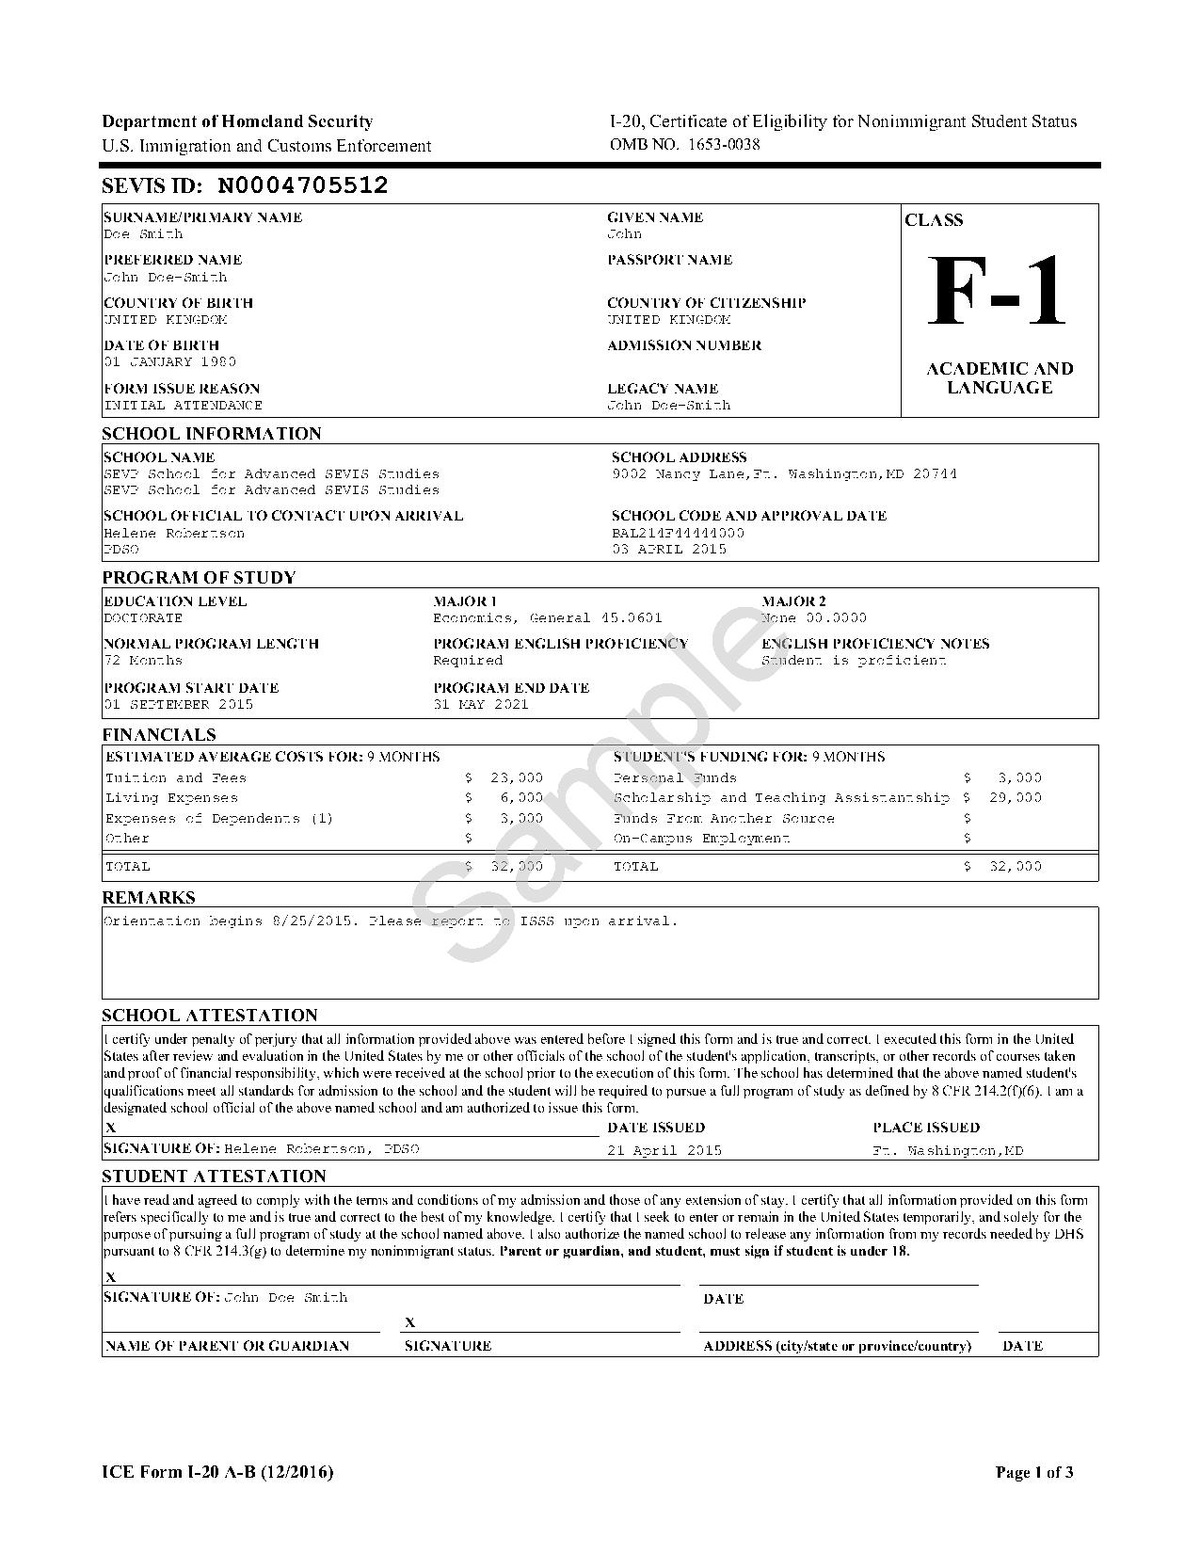 I-20 Form Sample